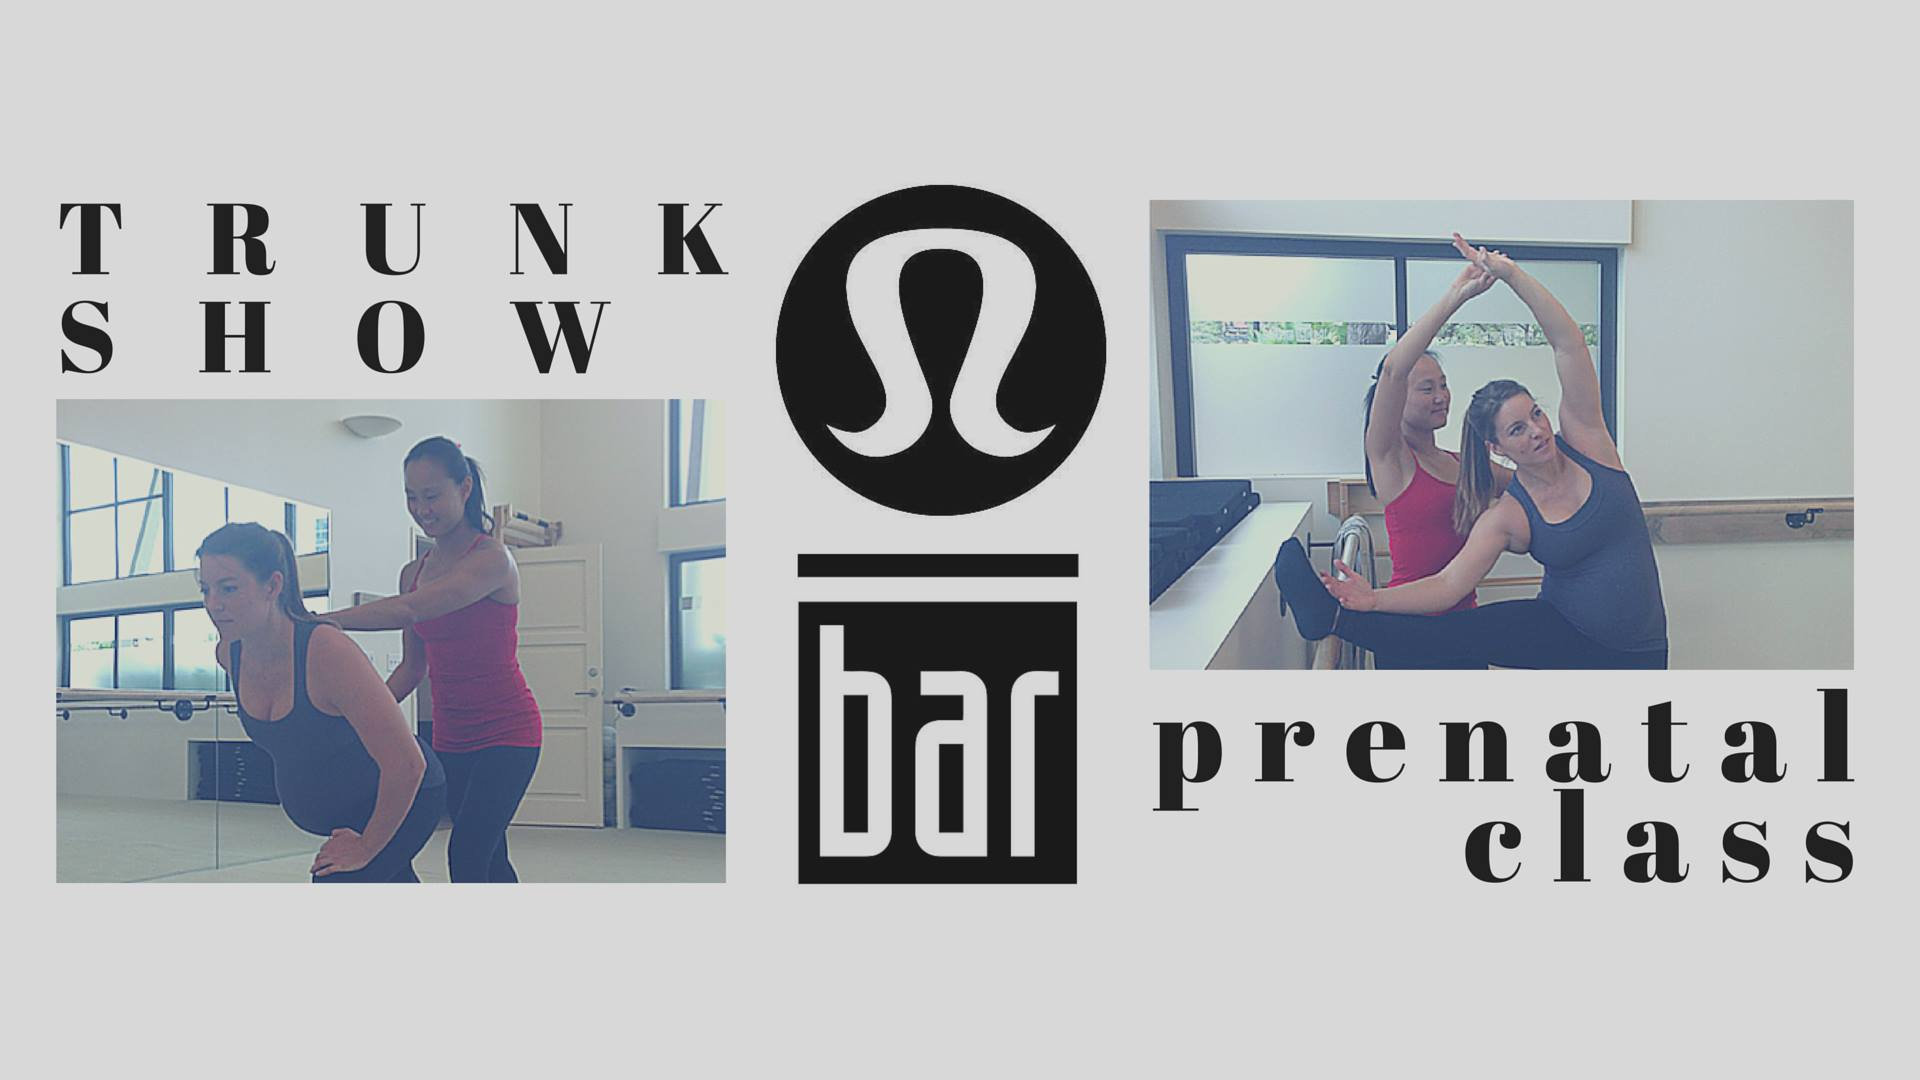 trunk show and prenatal class